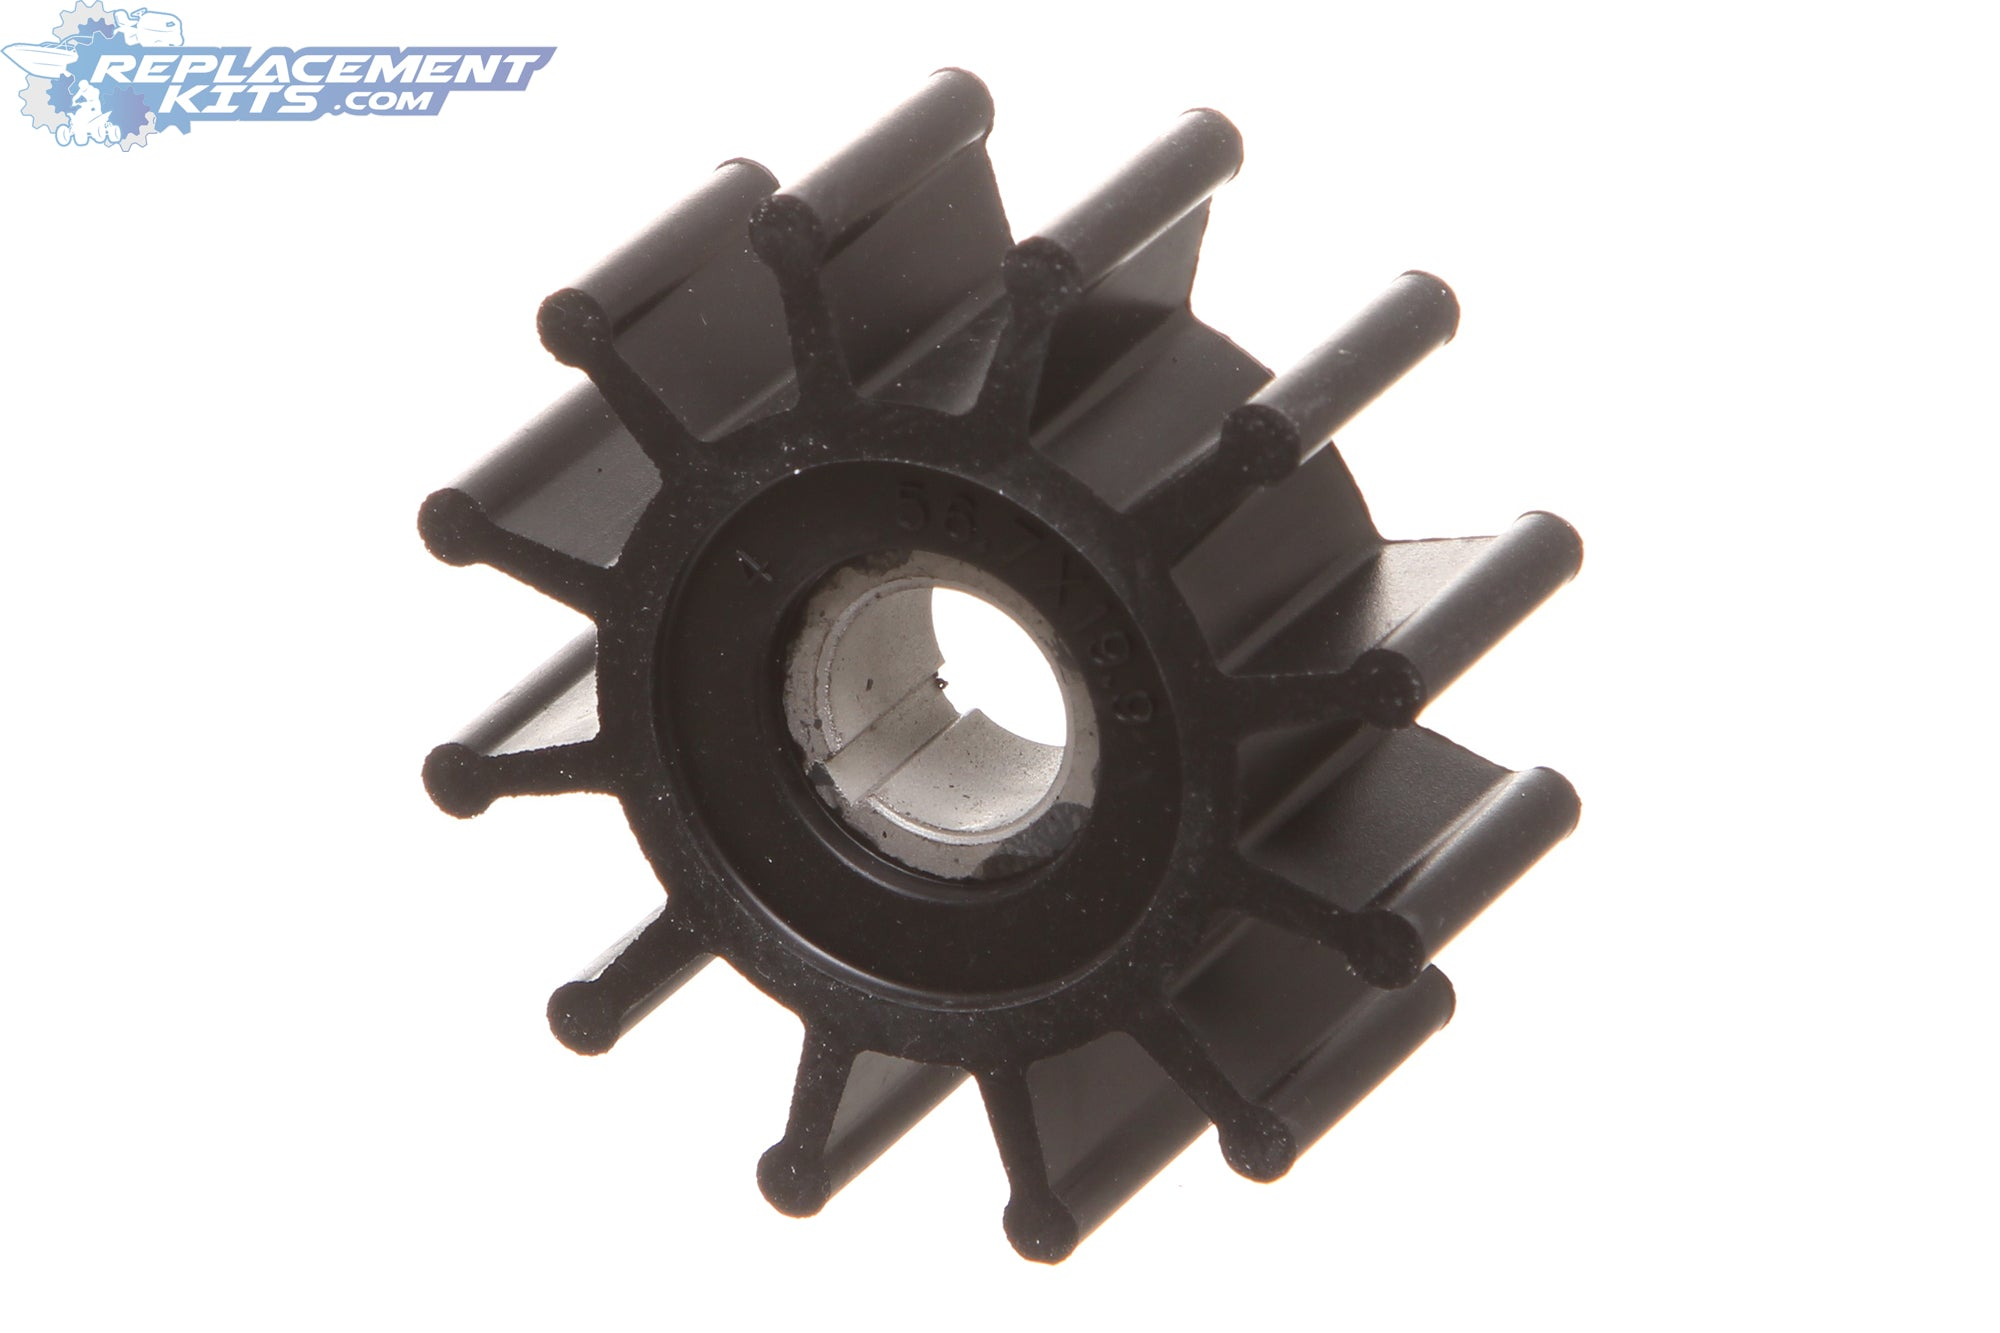 12 Blade Impeller For Sherwood 10077K Onan 132-0375 Westerbeke 11764 33100 Chris